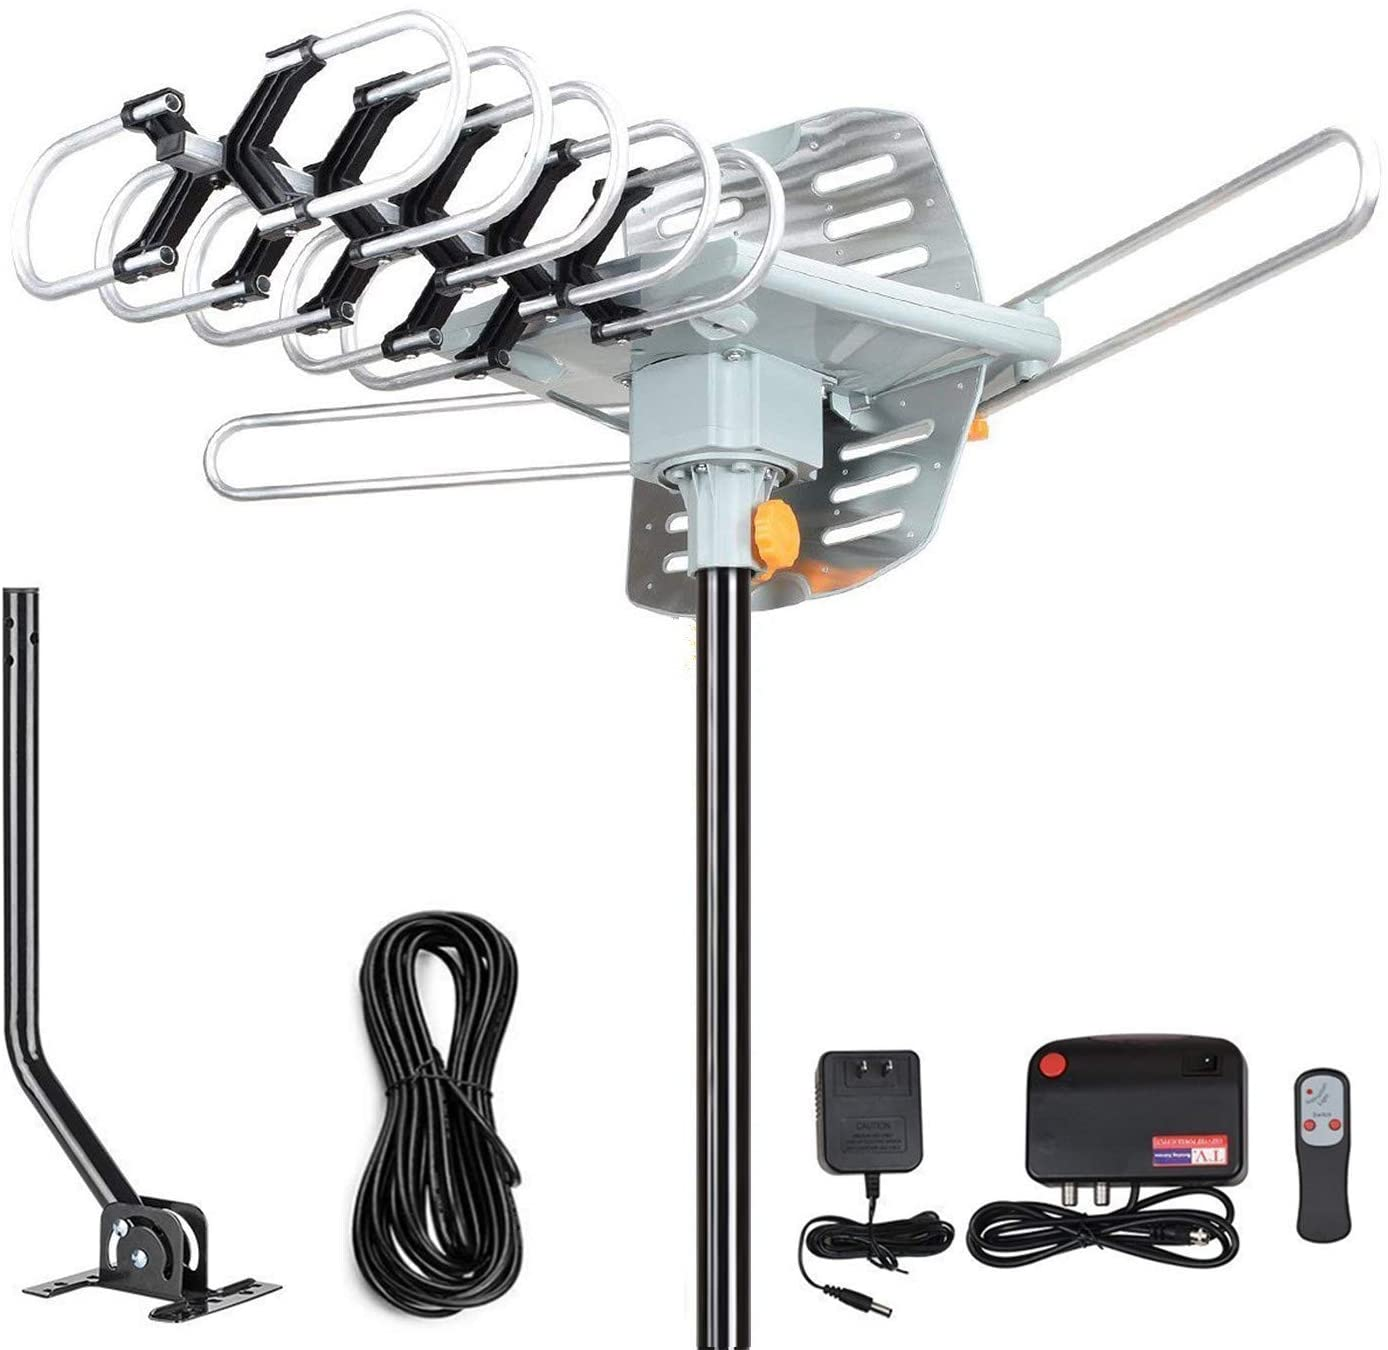 2020 Version Outdoor Amplified Digital HDTV Antenna by BEFORE